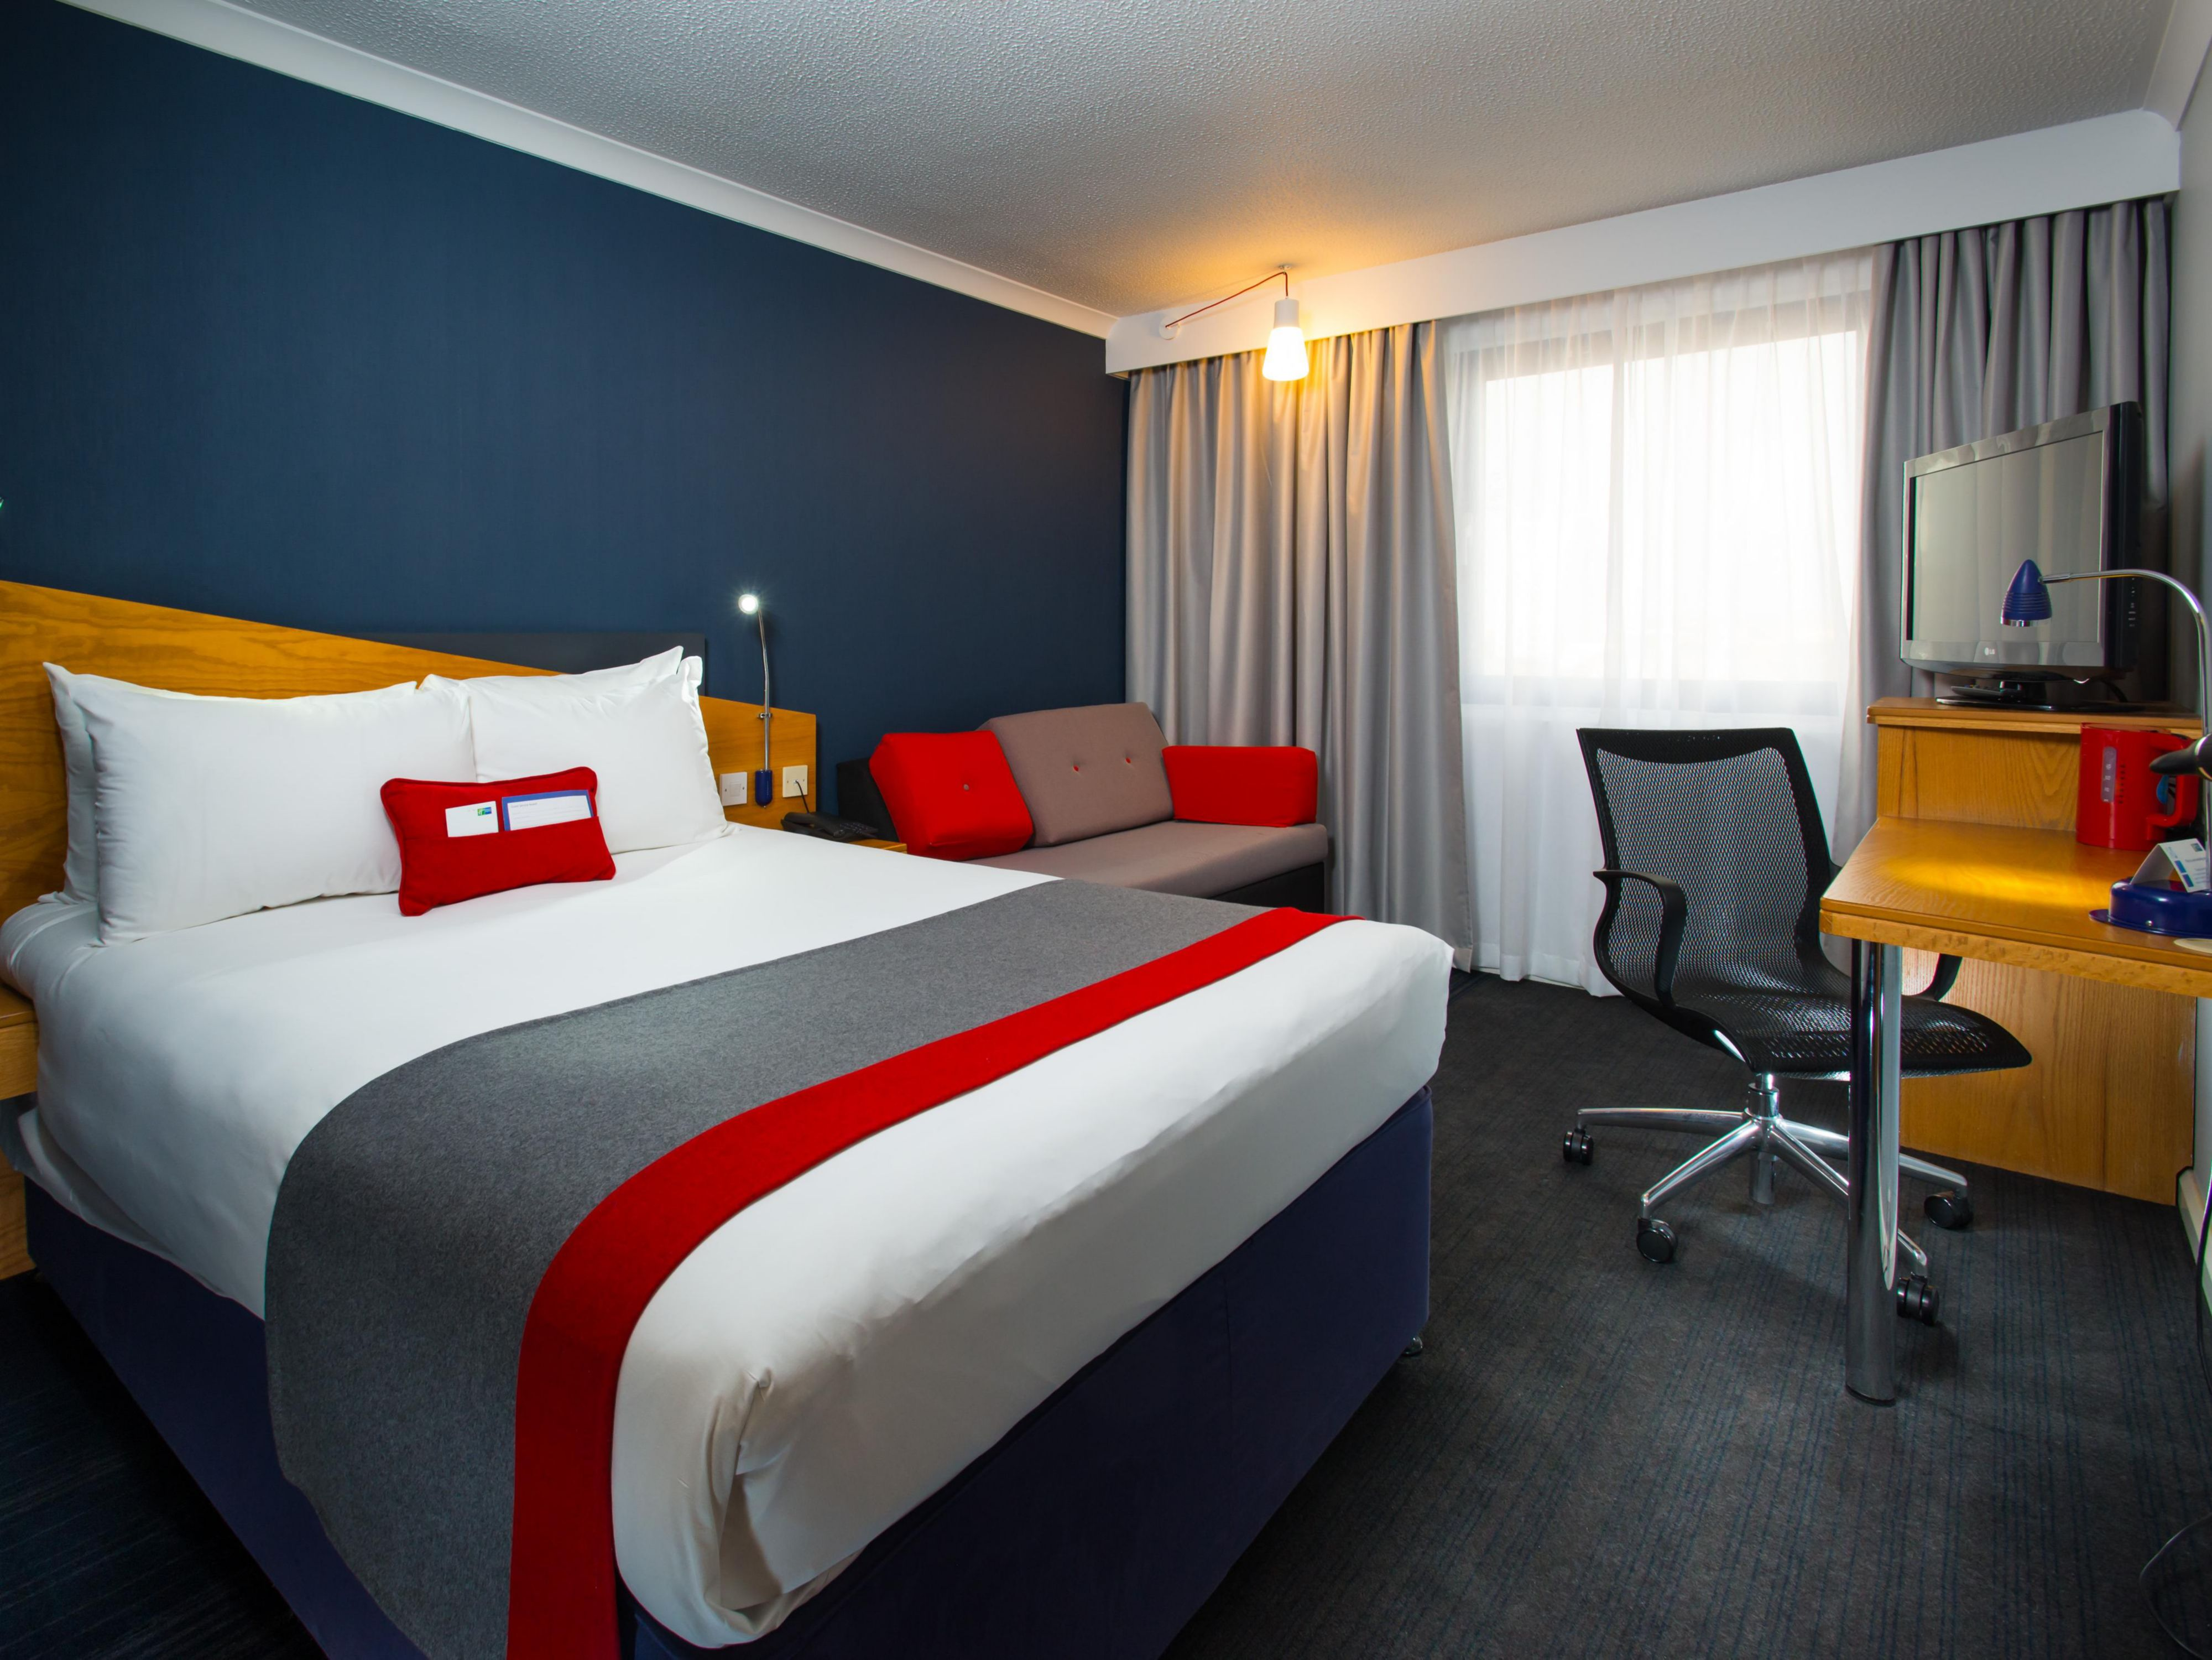 We think our refurbished rooms look fab! What do you think?